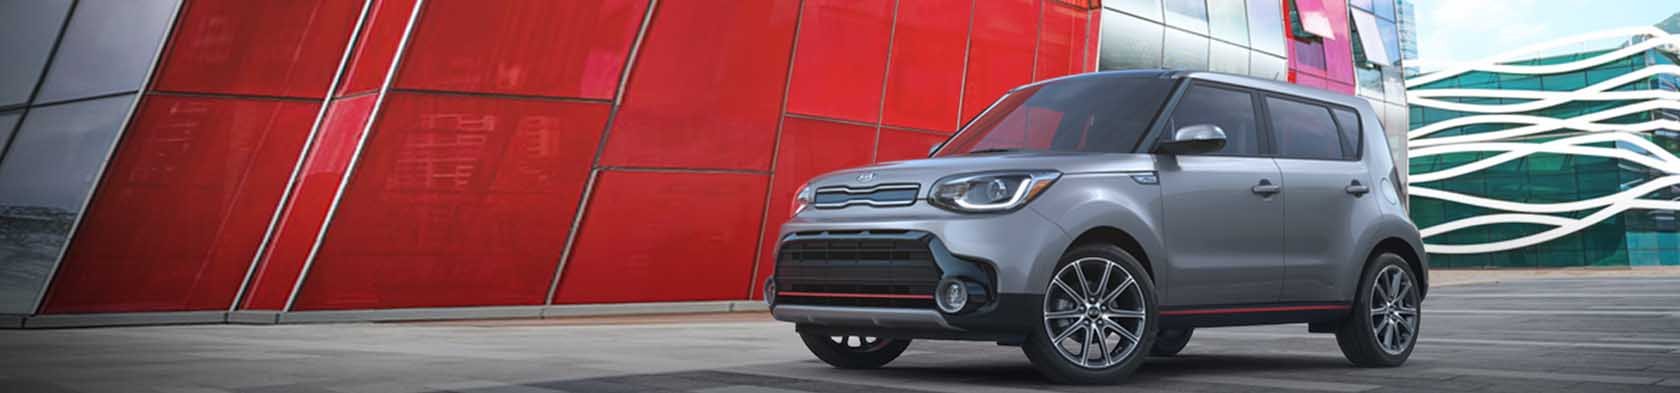 Start Your Adventure with a 2019 Kia Soul Today!